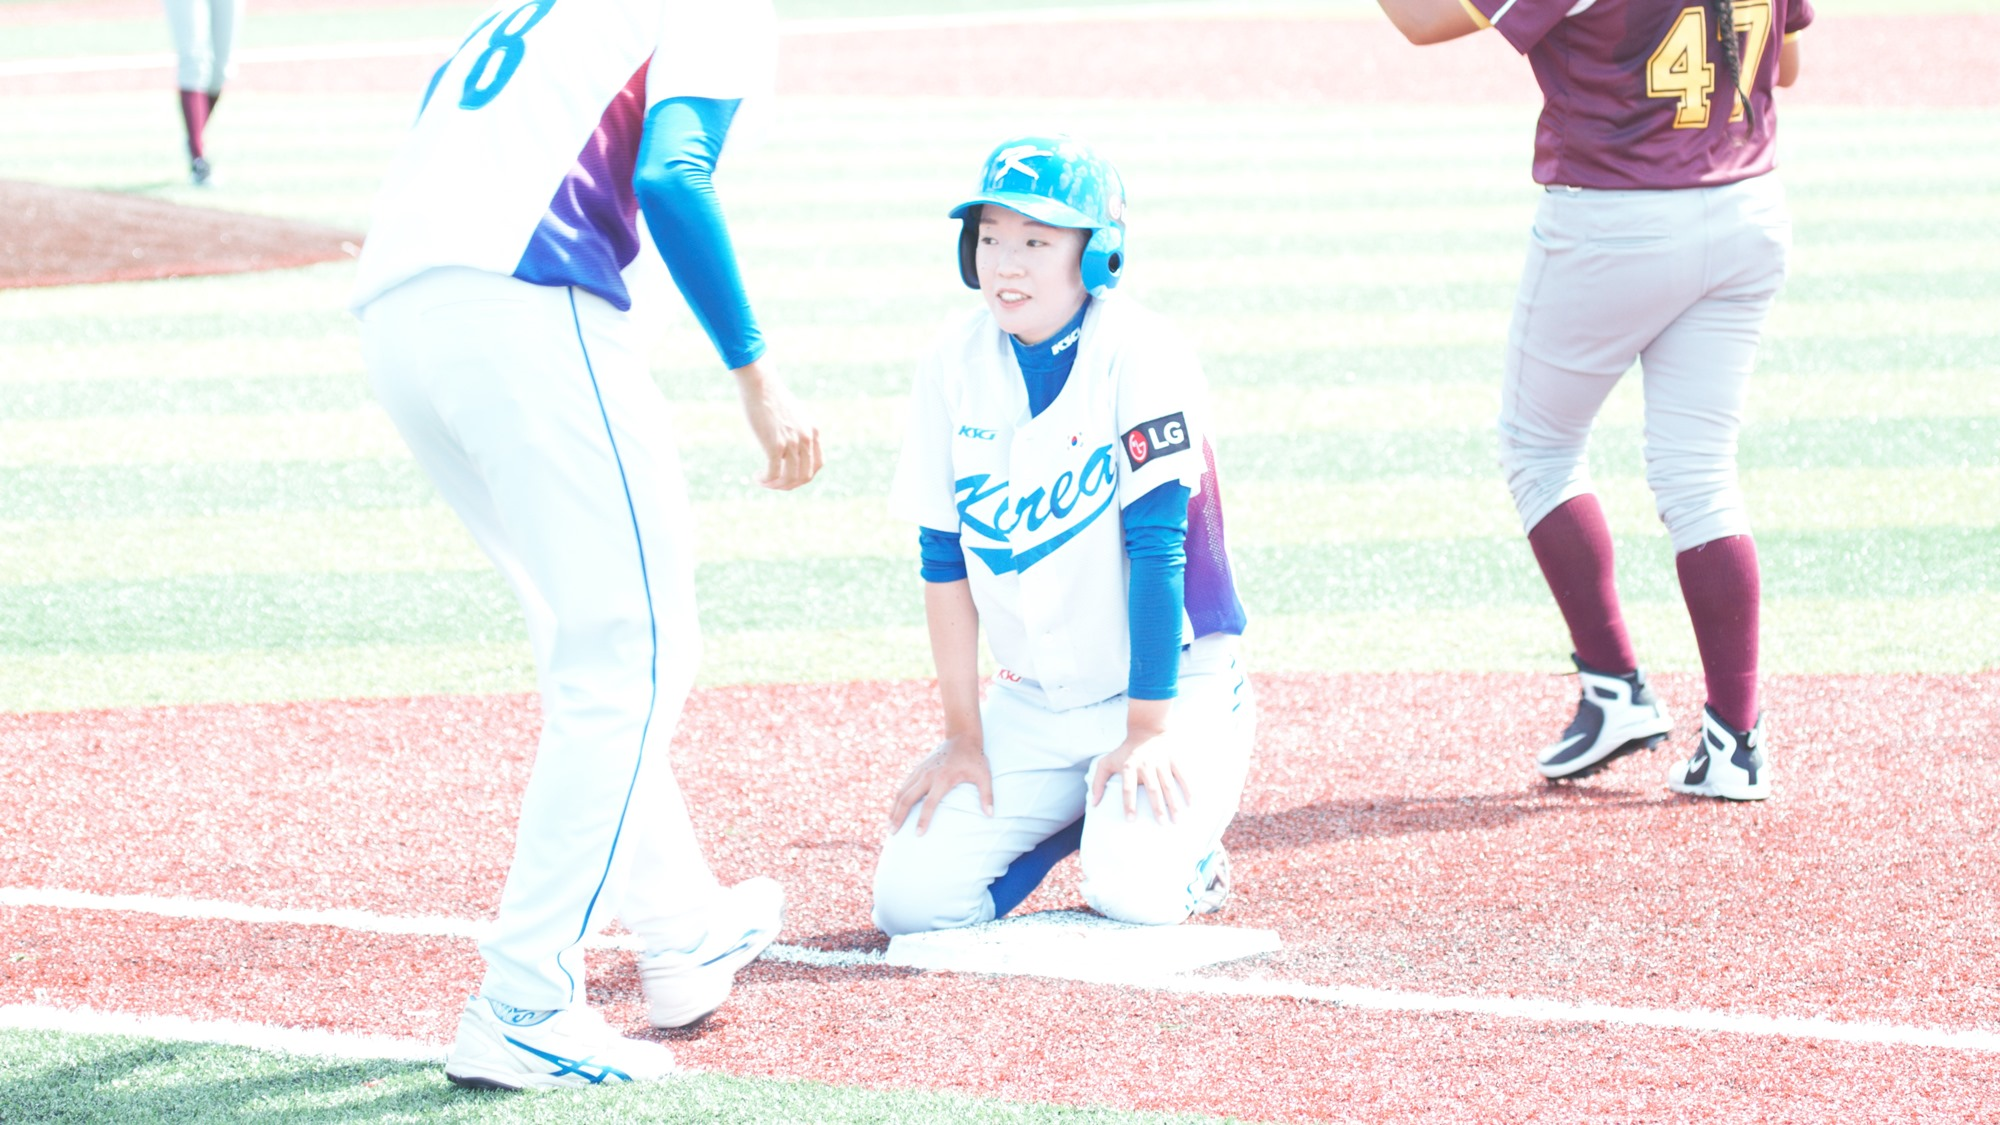 Korea loaded the bases in the seventh but the game ended on a double play